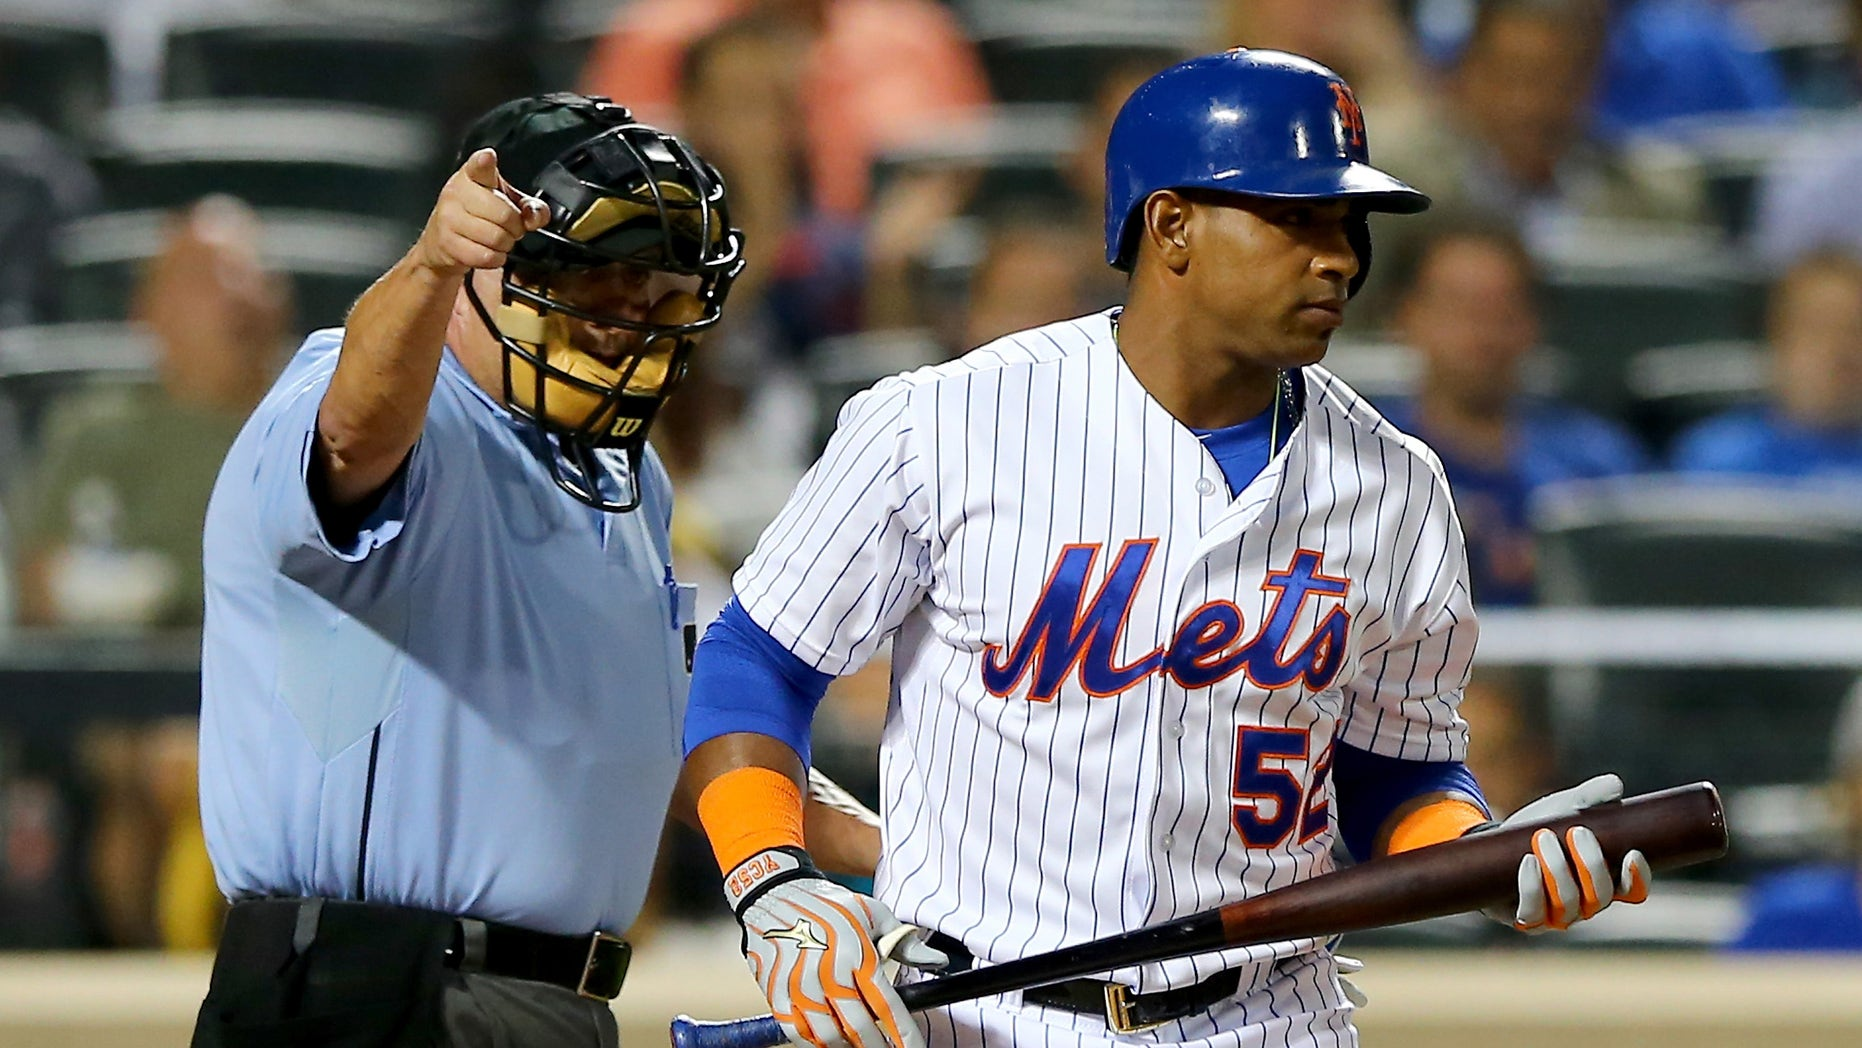 NEW YORK, NY - SEPTEMBER 15:  Home plate umpire Dale Scott sends Yoenis Cespedes #52 of the New York Mets to first after he is hit by a pitch from Tom Koehler #34 of the Miami Marlins in the first inning on September 15, 2015 at Citi Field in the Flushing neighborhood of the Queens borough of New York City.  (Photo by Elsa/Getty Images)